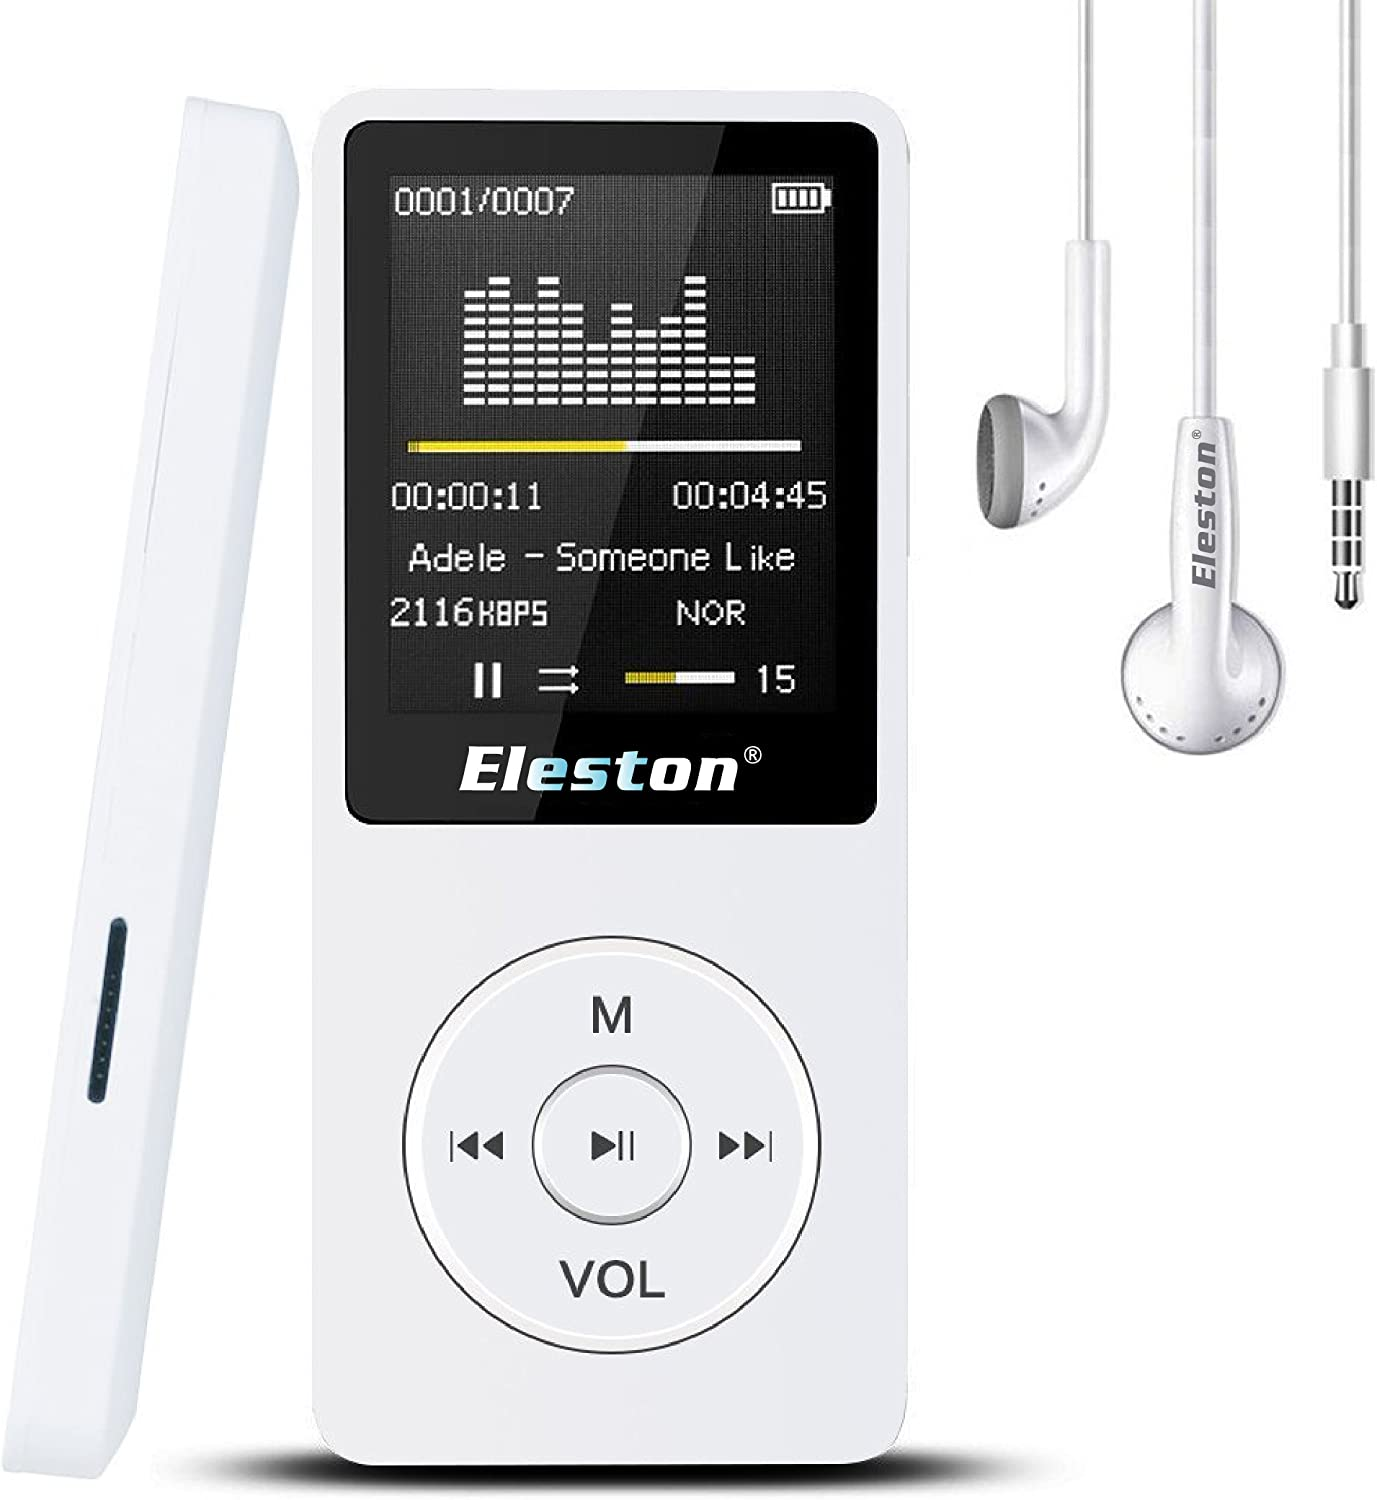 MP3 Player 32GB MP3 Player with Bluetooth circular,Black Voice ...